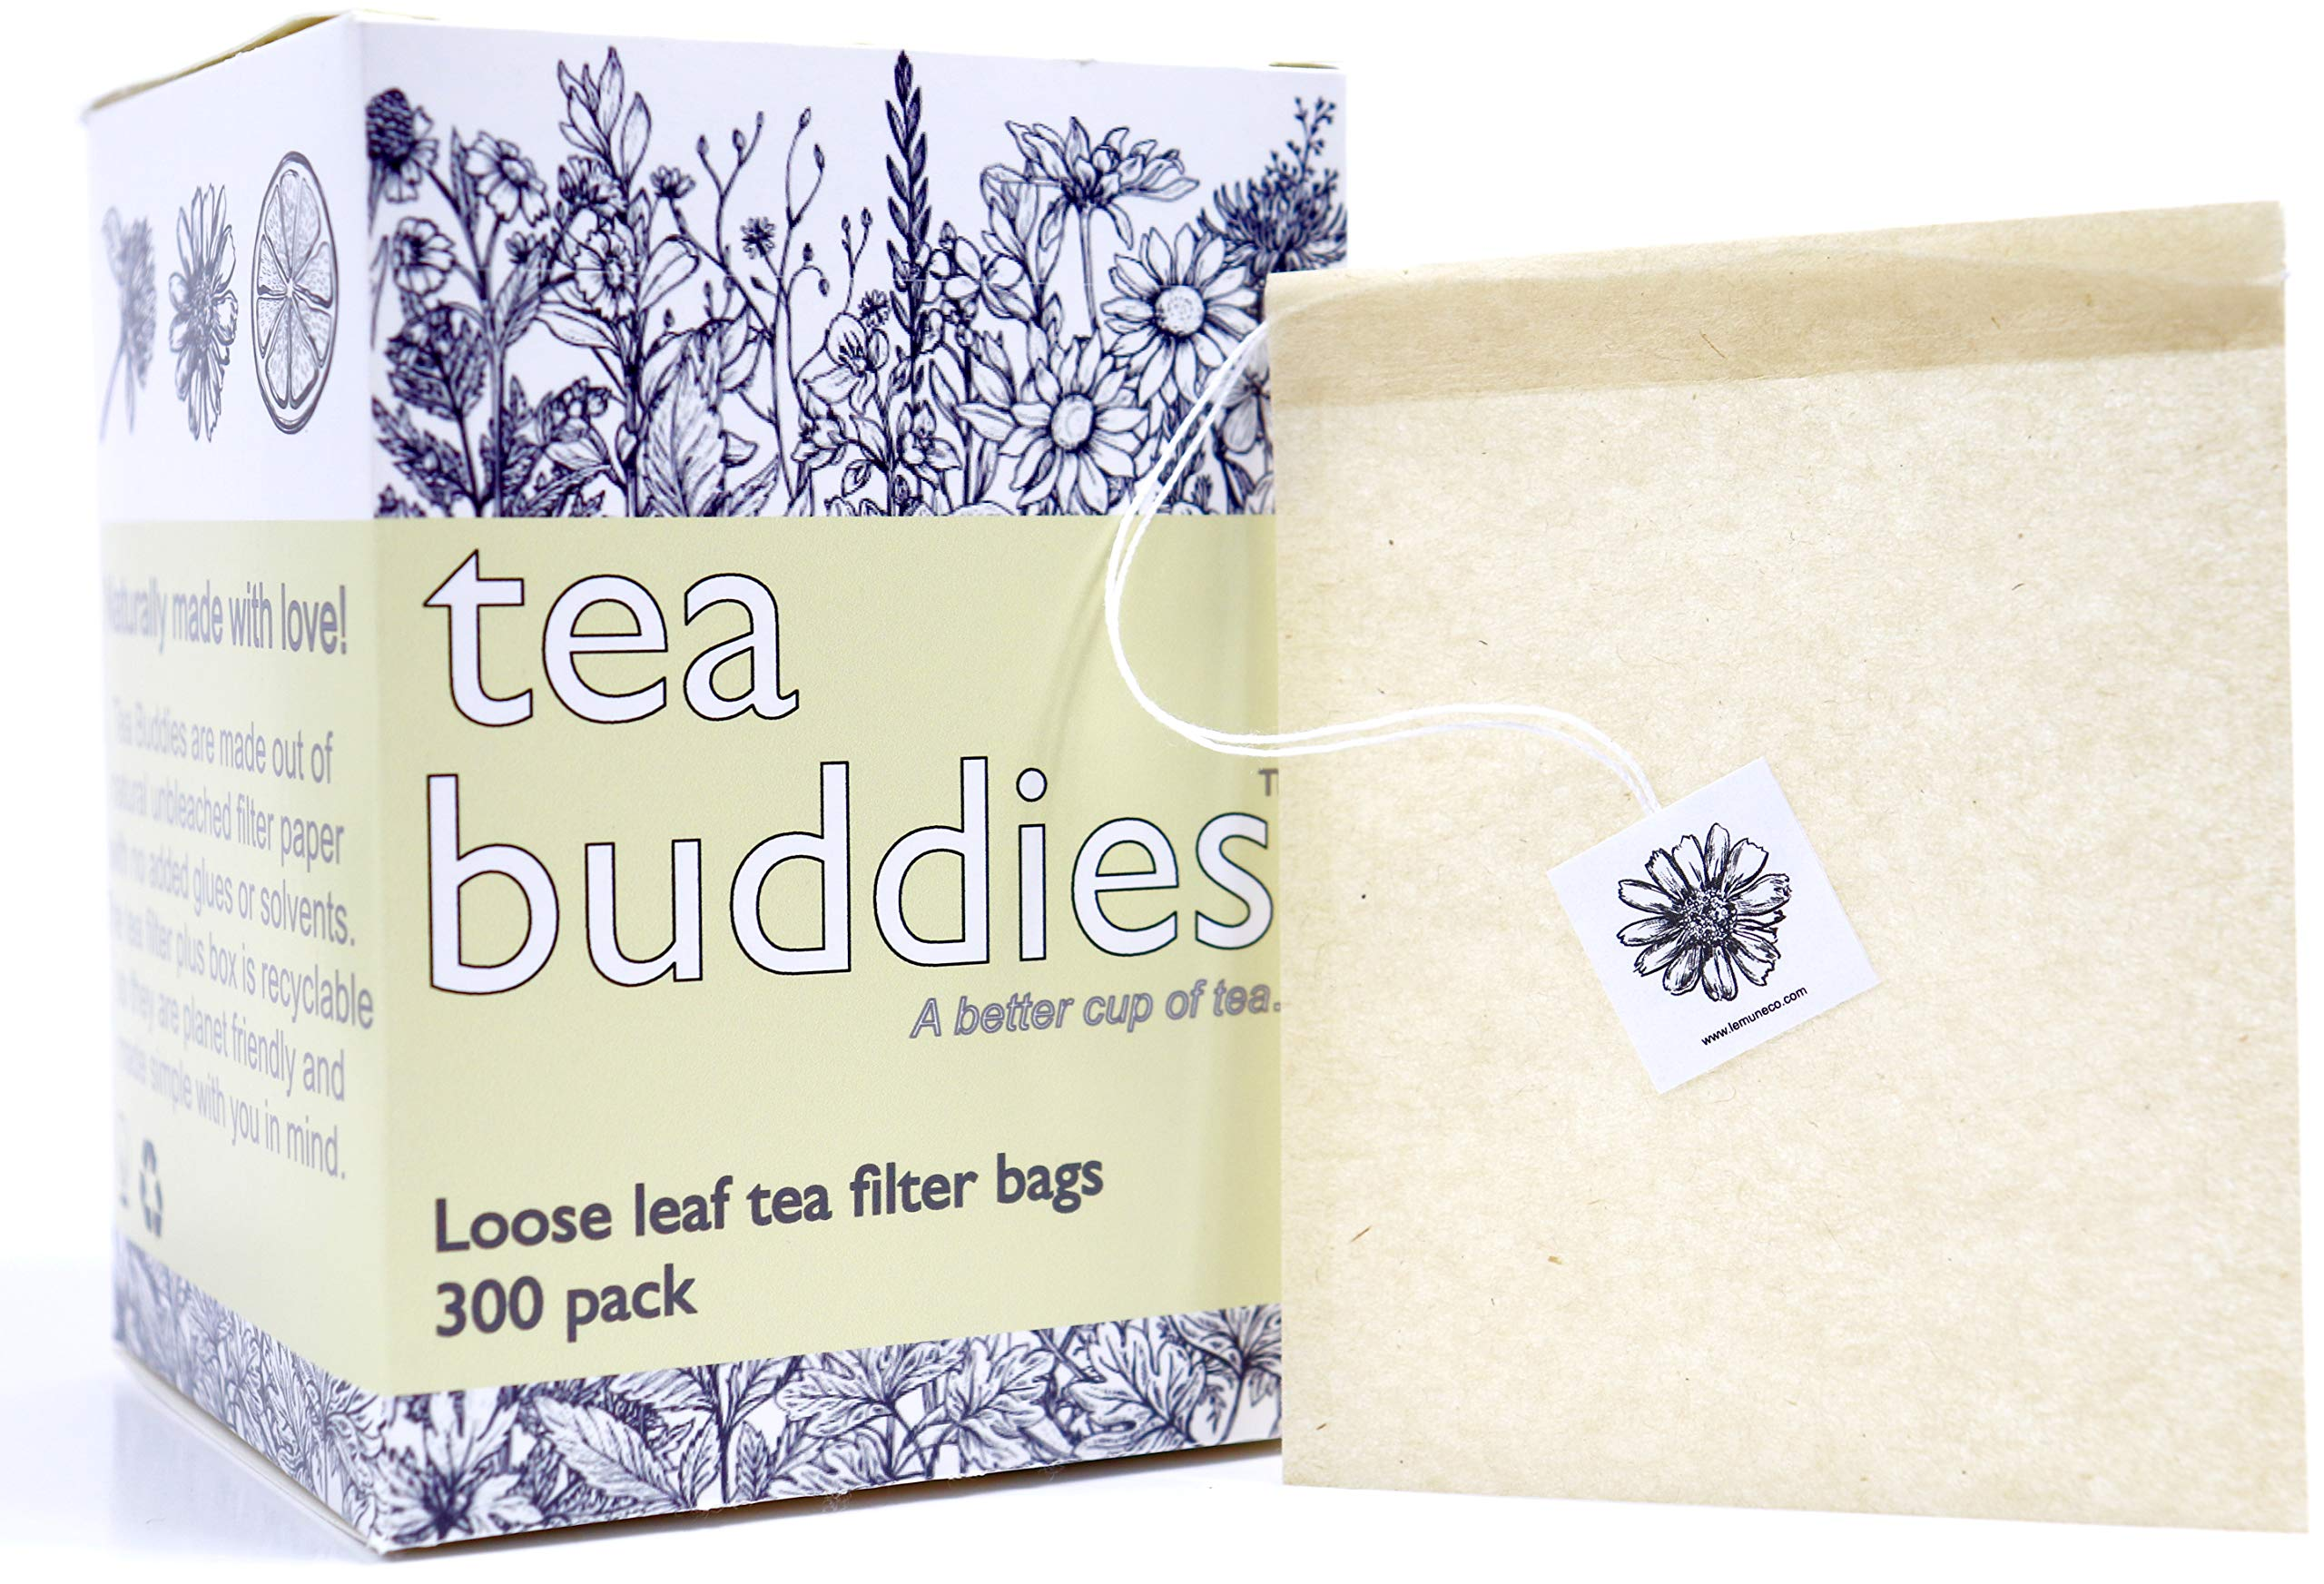 Tea Buddies Loose Tea Filter Bags, Eco-Friendly Disposable Tea Infuser with Drawstring - Fill Your Own Empty Loose Tea Bags - Bonus Free Recipes! by Tea Buddies